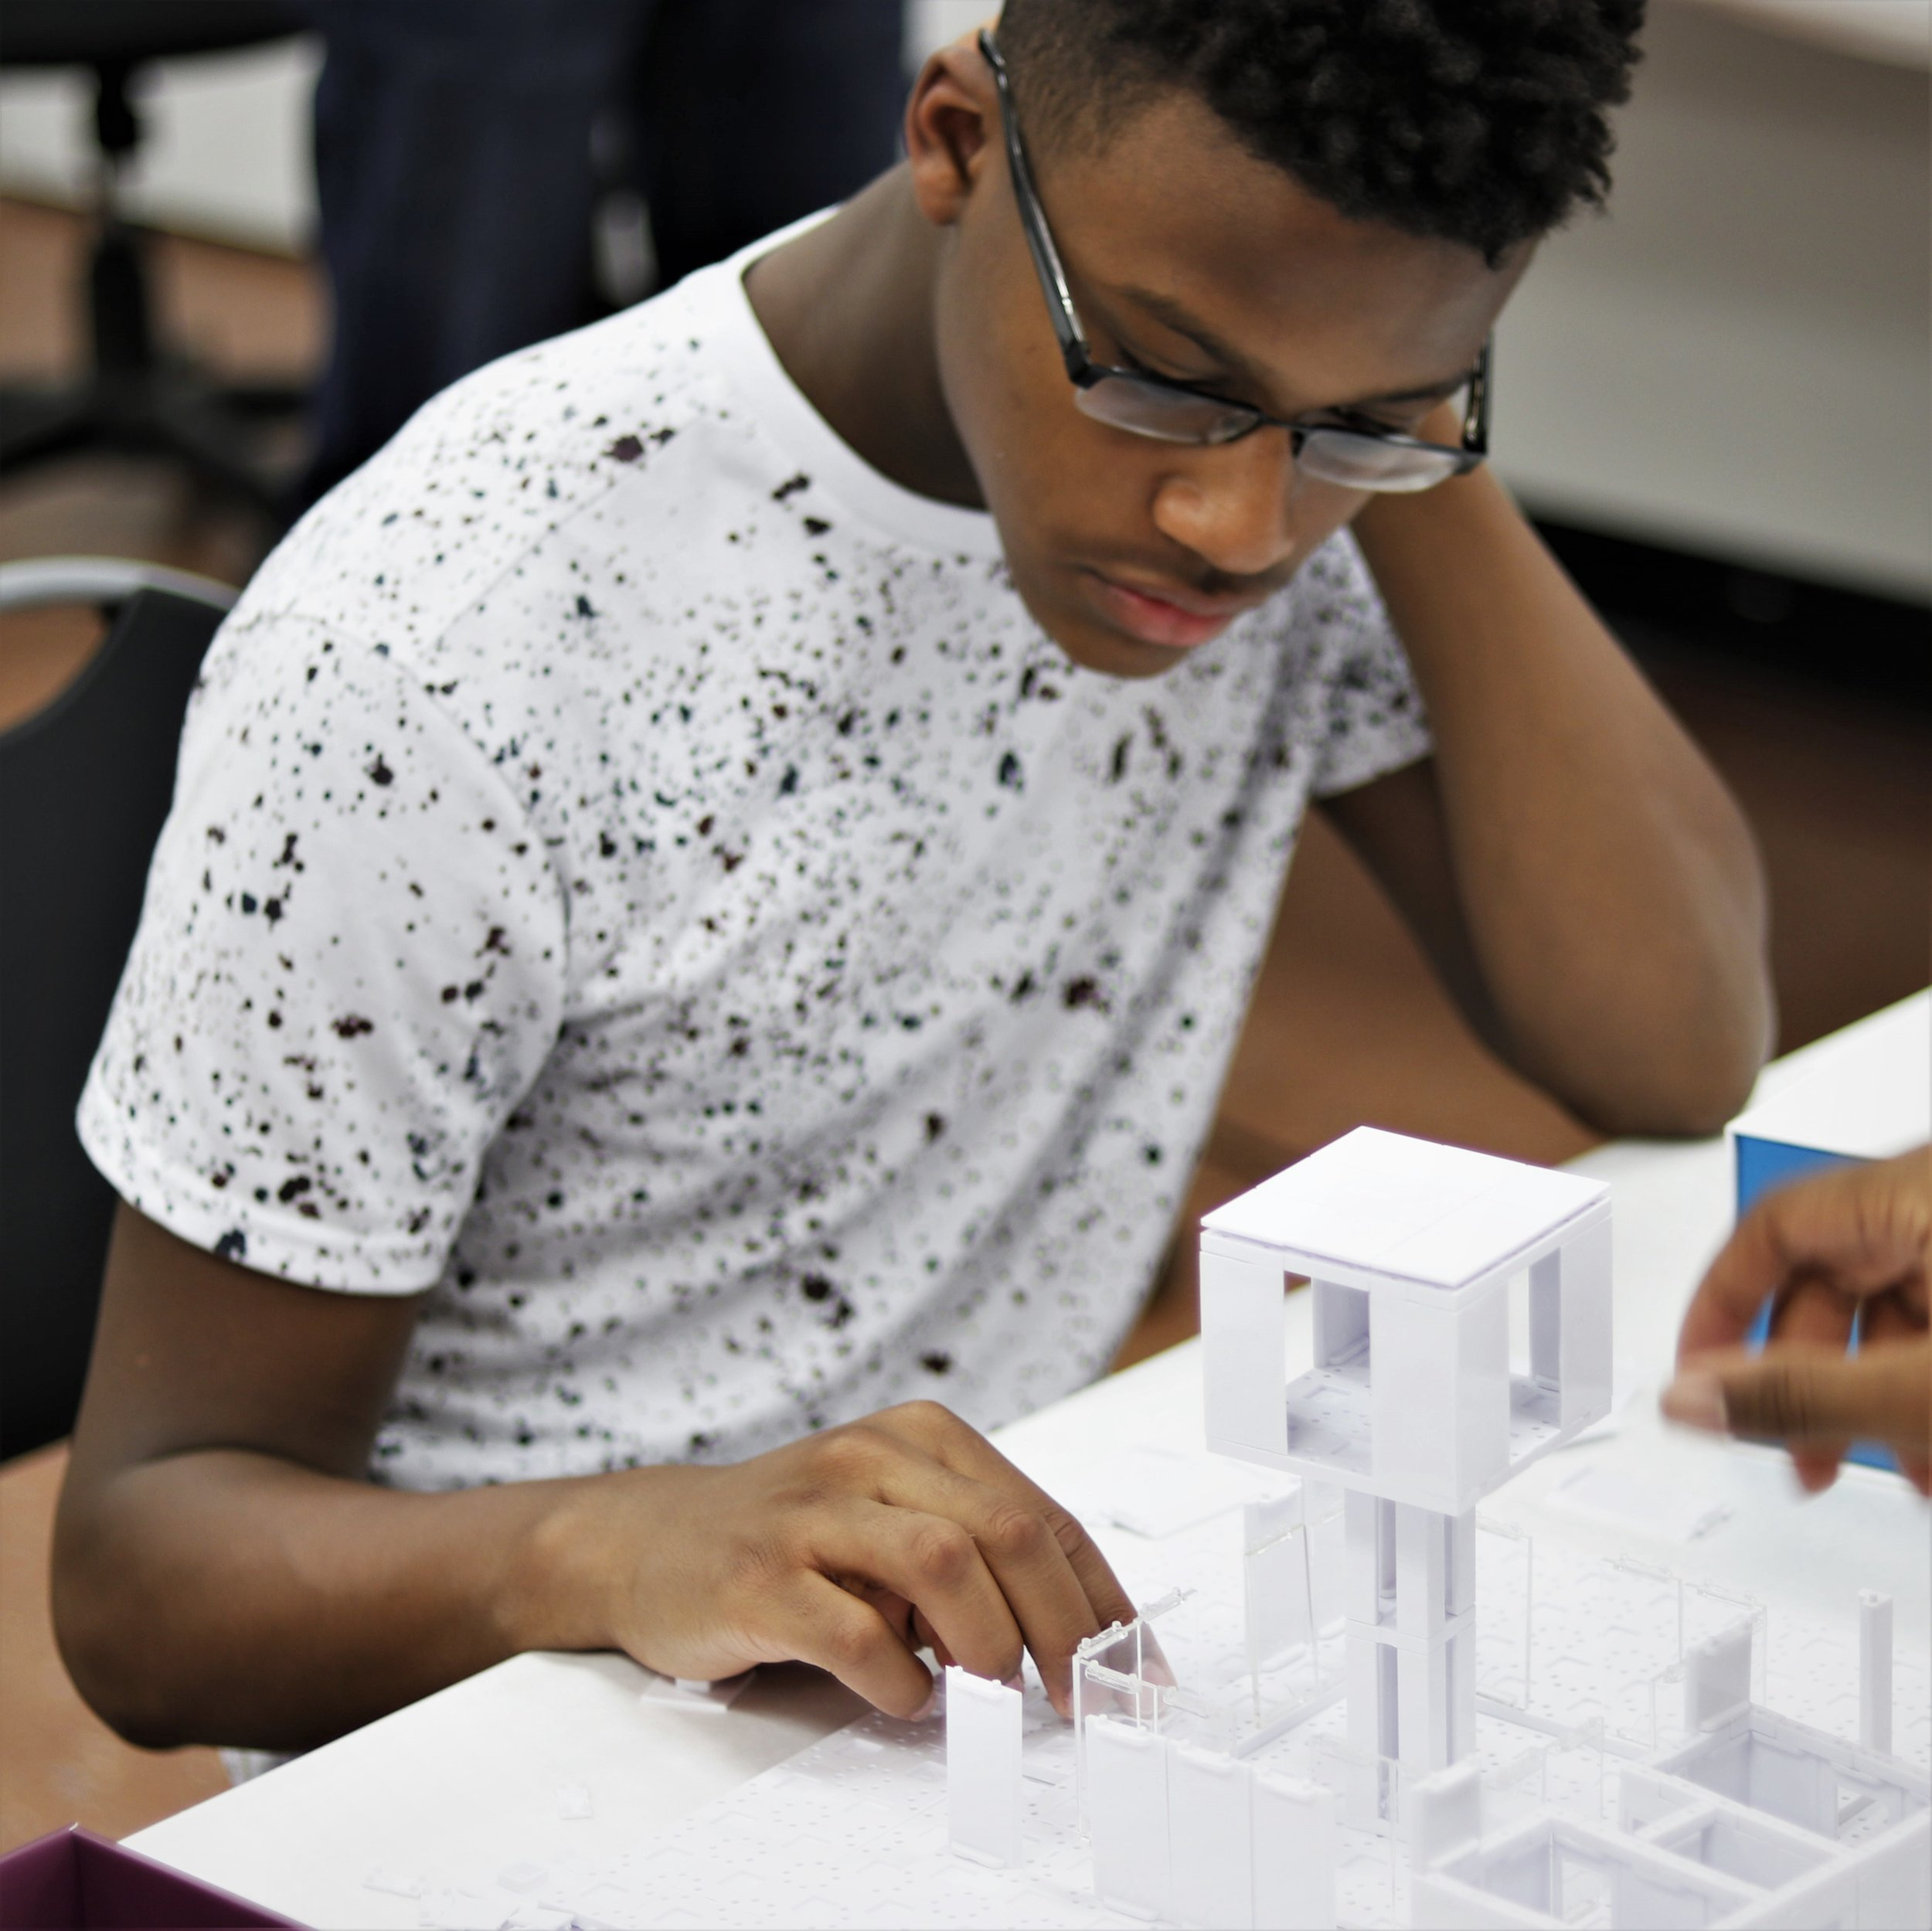 Elijah Pittman , Space and Design Intern  Elijah is a modeling enthusiast, photojournalist and aspiring architect passionate about how simple holistic design can be used as a stimulant to grow communities.